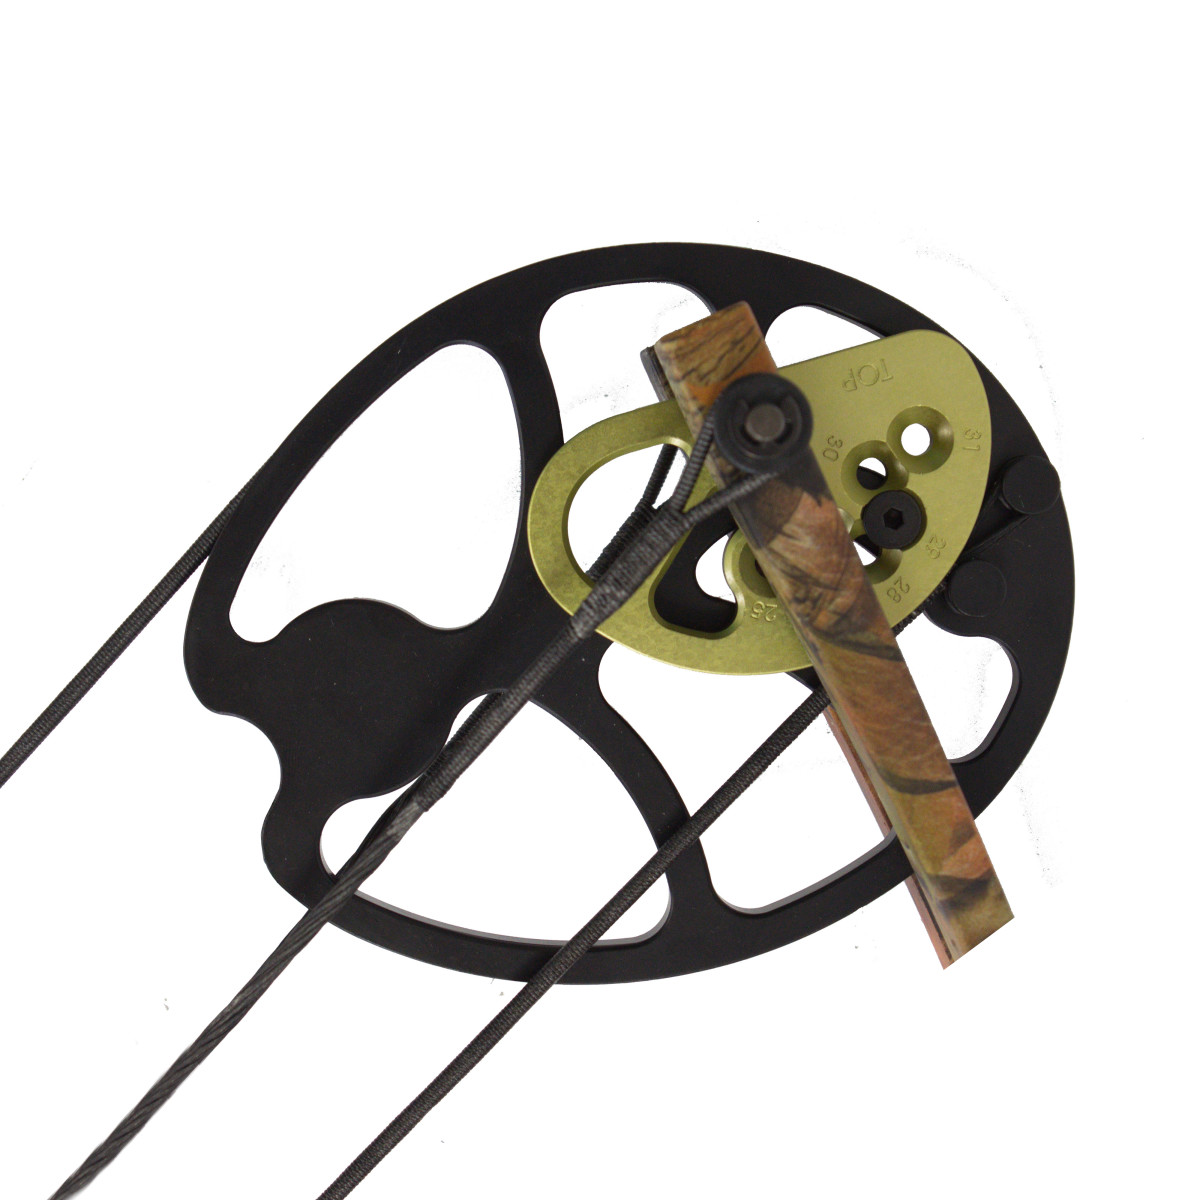 The 3 Most Important Components of Your Compound Bow